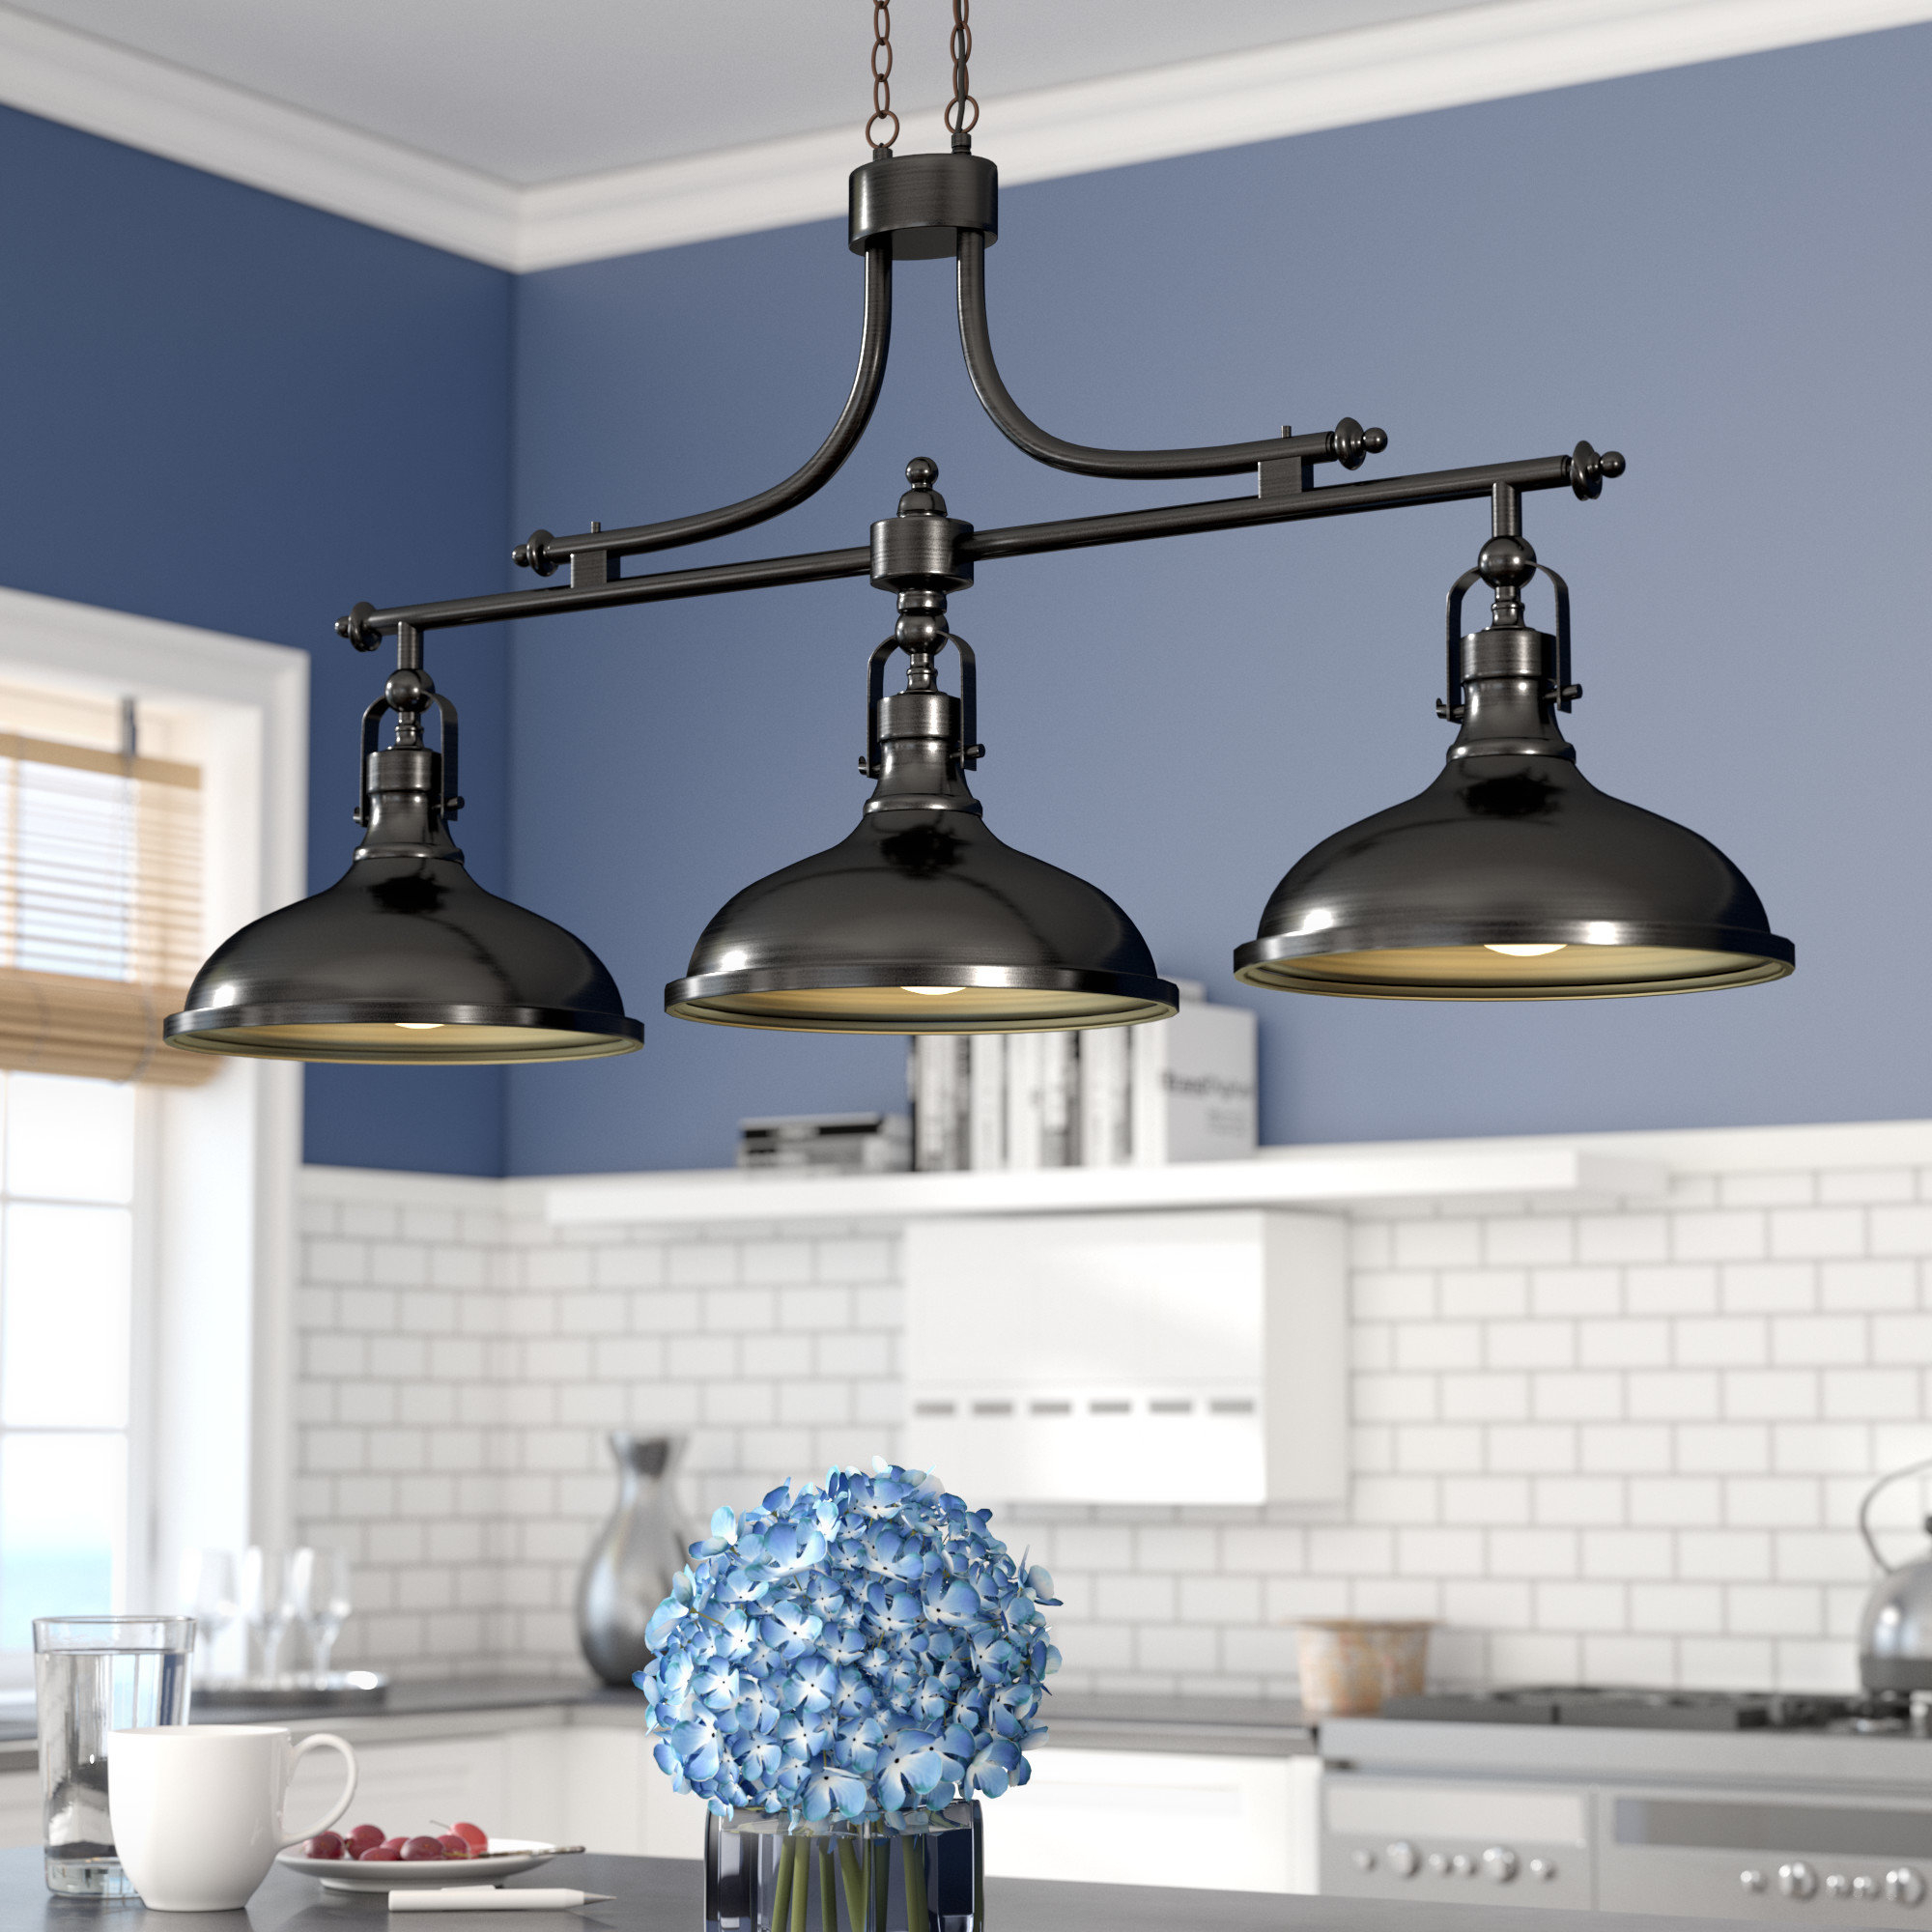 4 Light Island Pendant | Wayfair For Smithville 4 Light Kitchen Island Pendants (View 3 of 30)